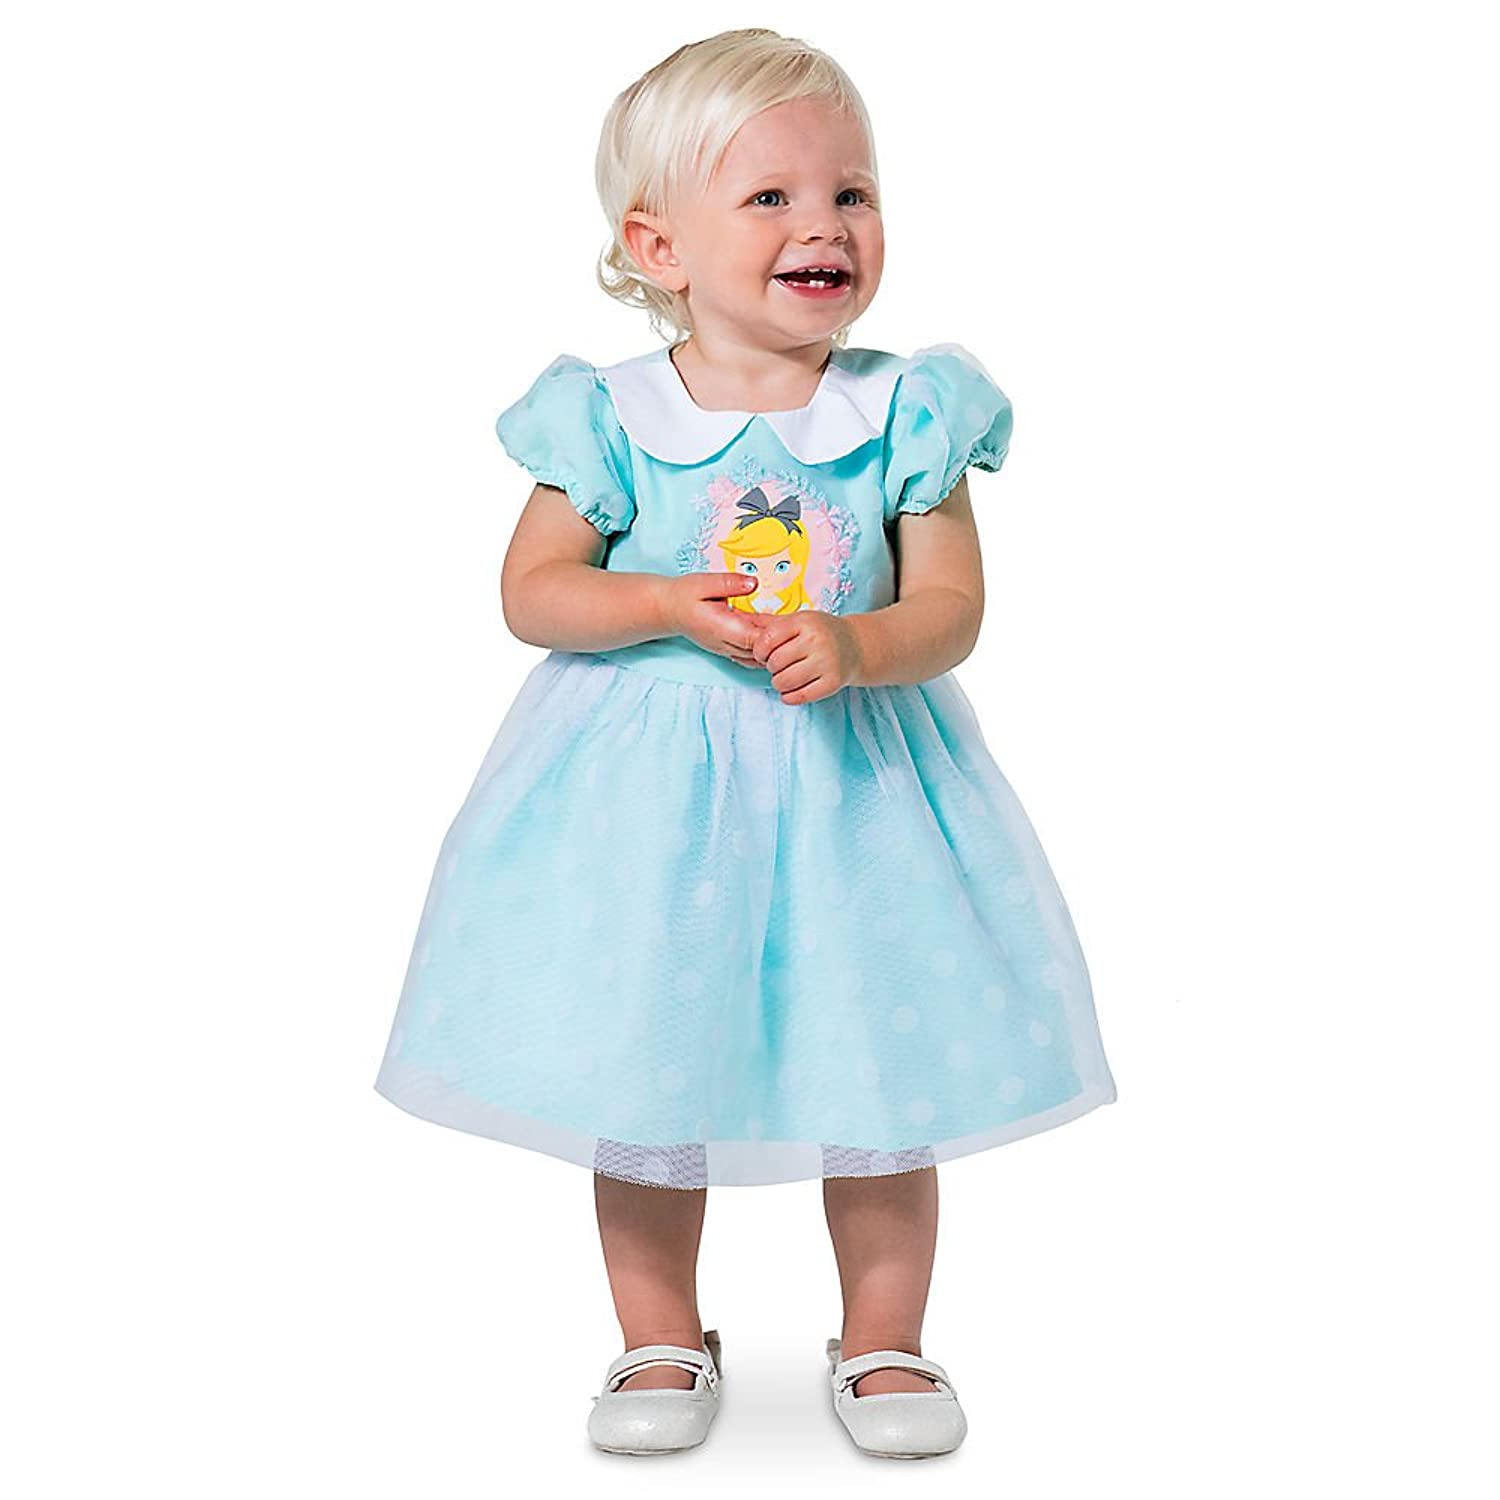 Amazon.com: Disney Alice in Wonderland Party Dress for Baby Size 6-9 ...